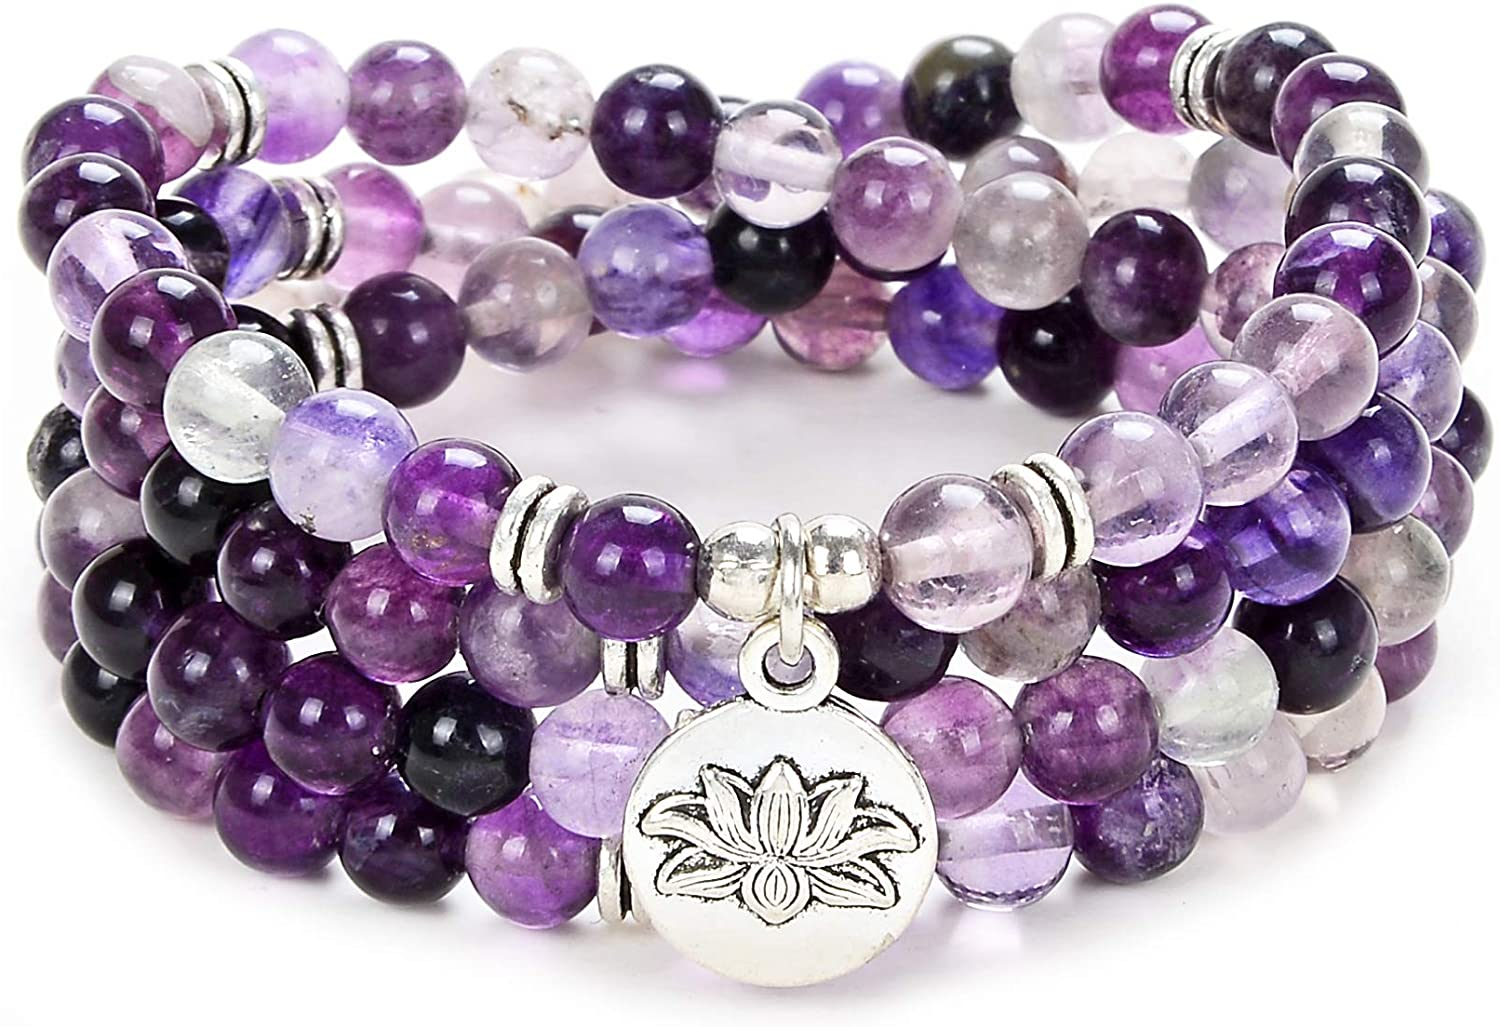 Self-Discovery 108 Bead Mala Bracelet with Lotus Charm and 6mm Small Stone Beads